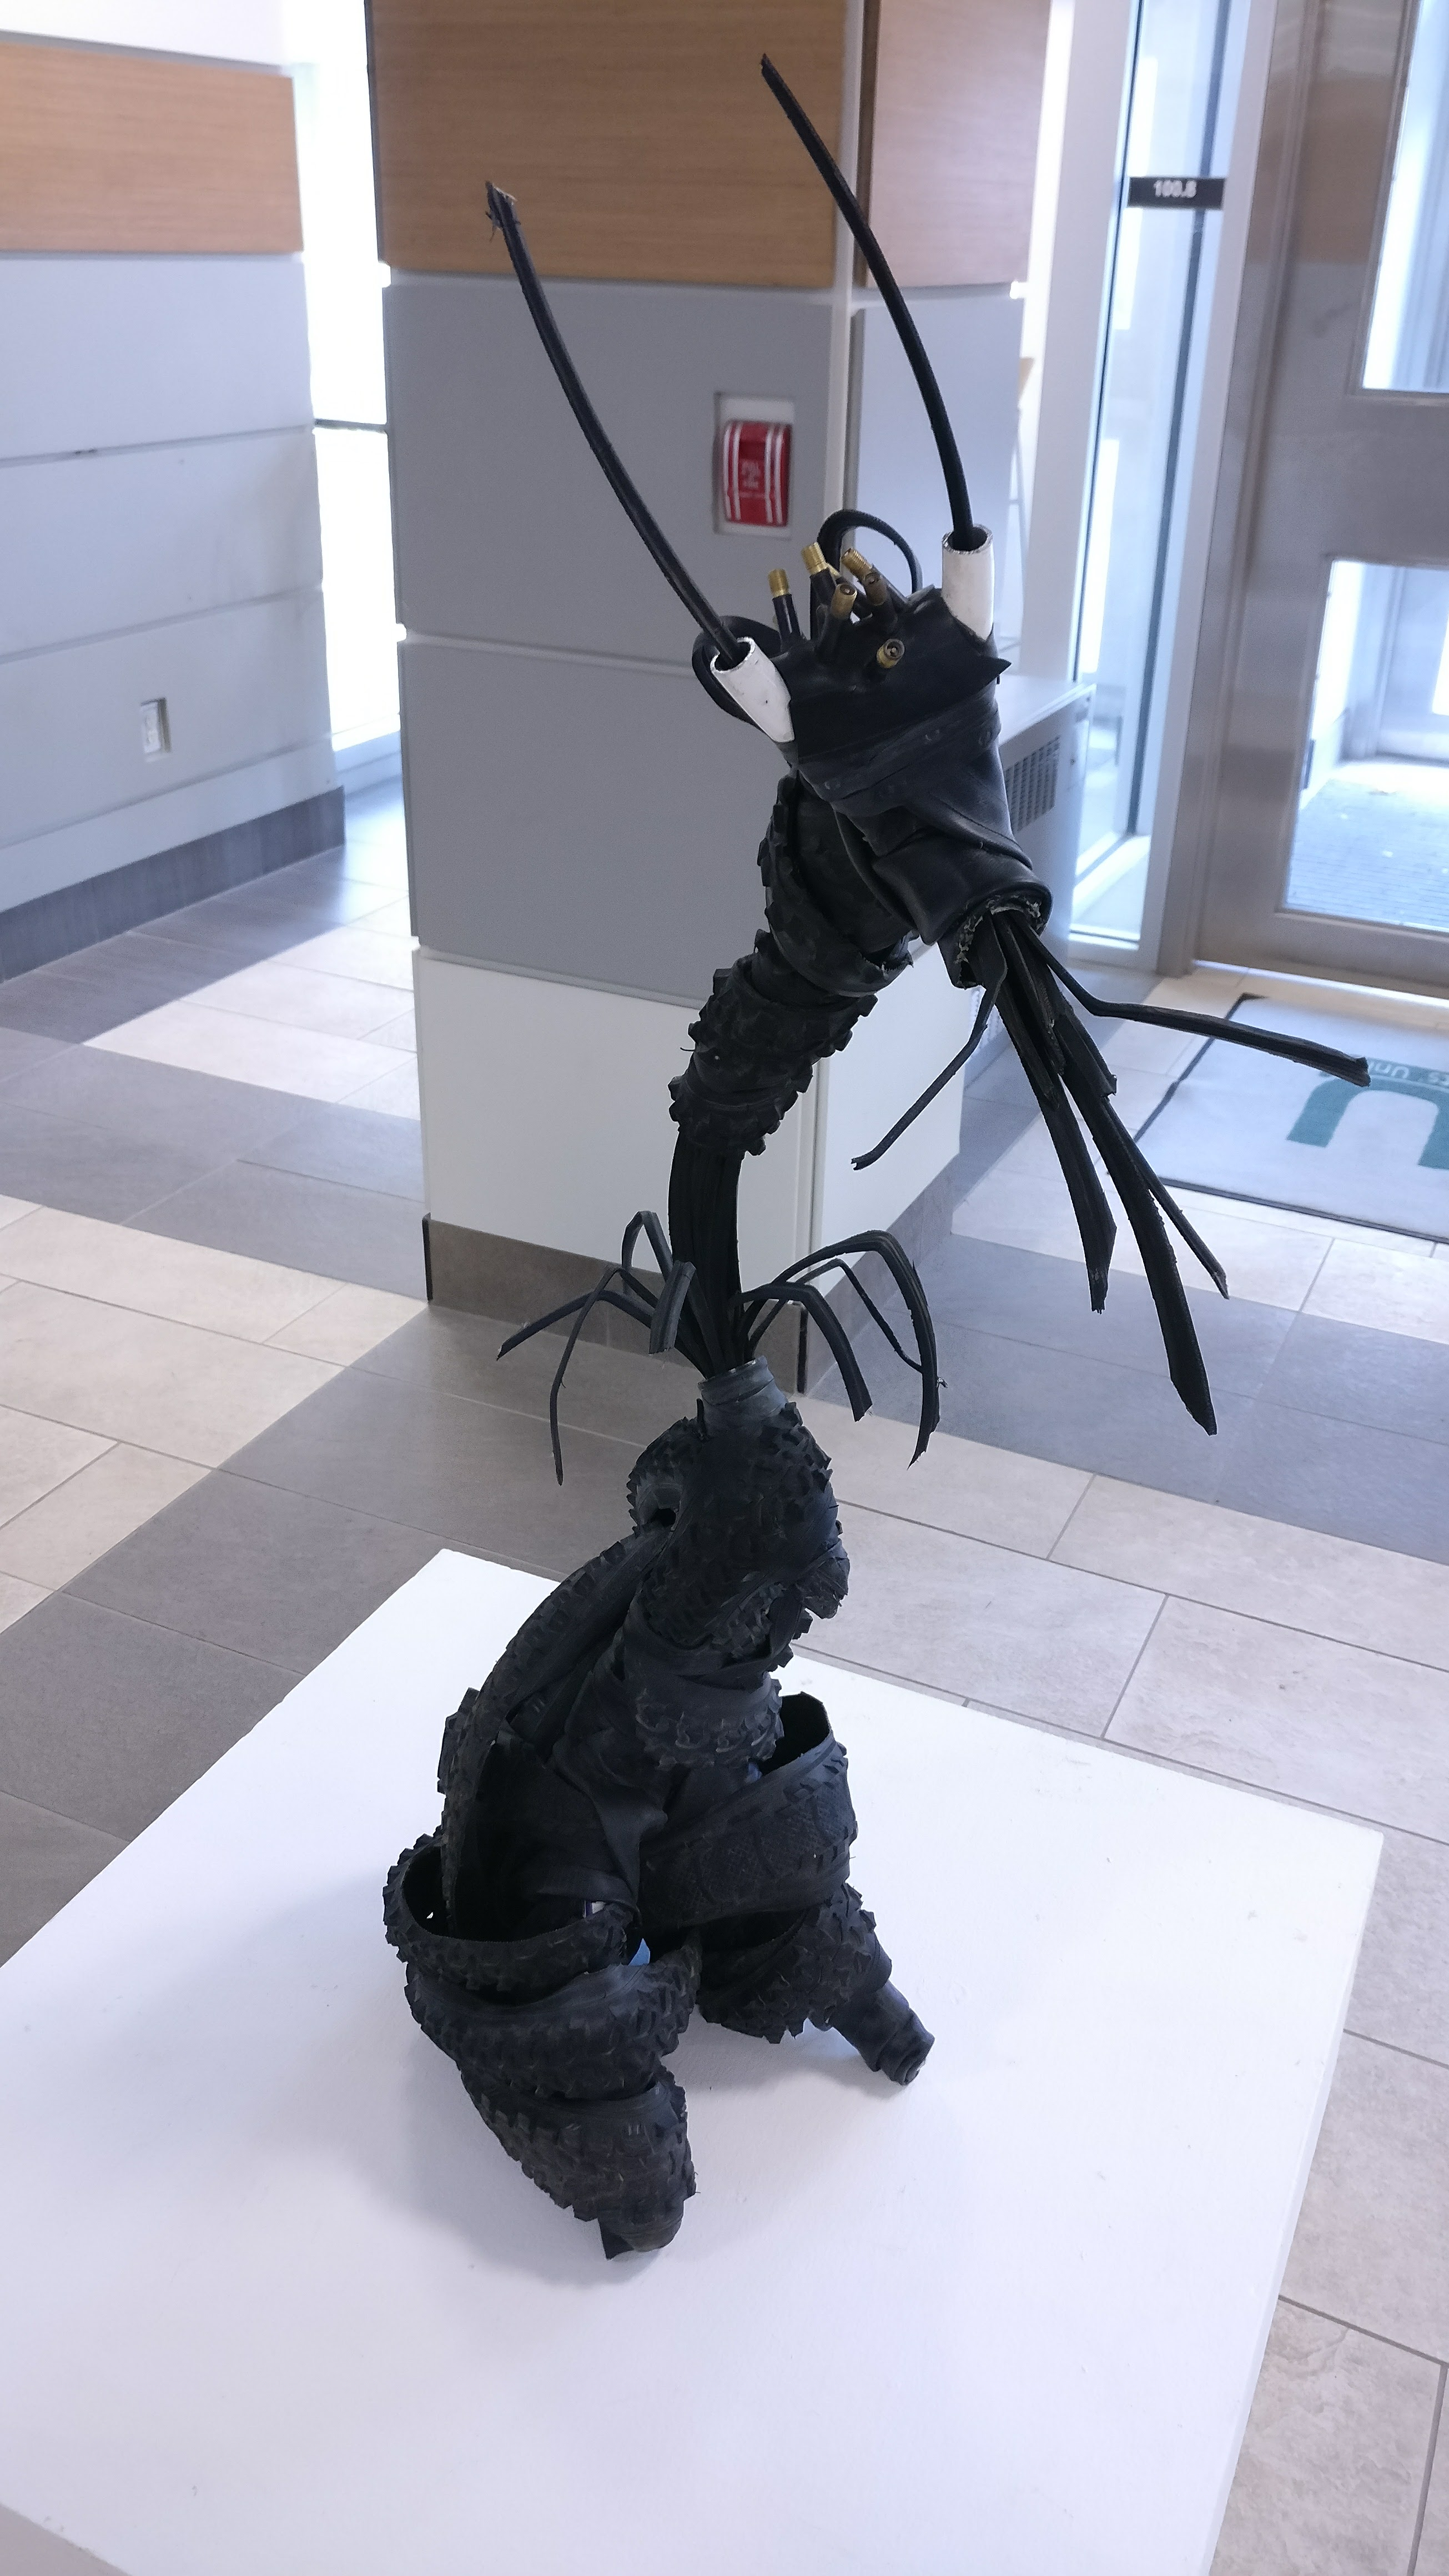 An anthropomorphic creature sculpture made from bike tires and cables by Hailey Jones for ART*Cycled 2017.